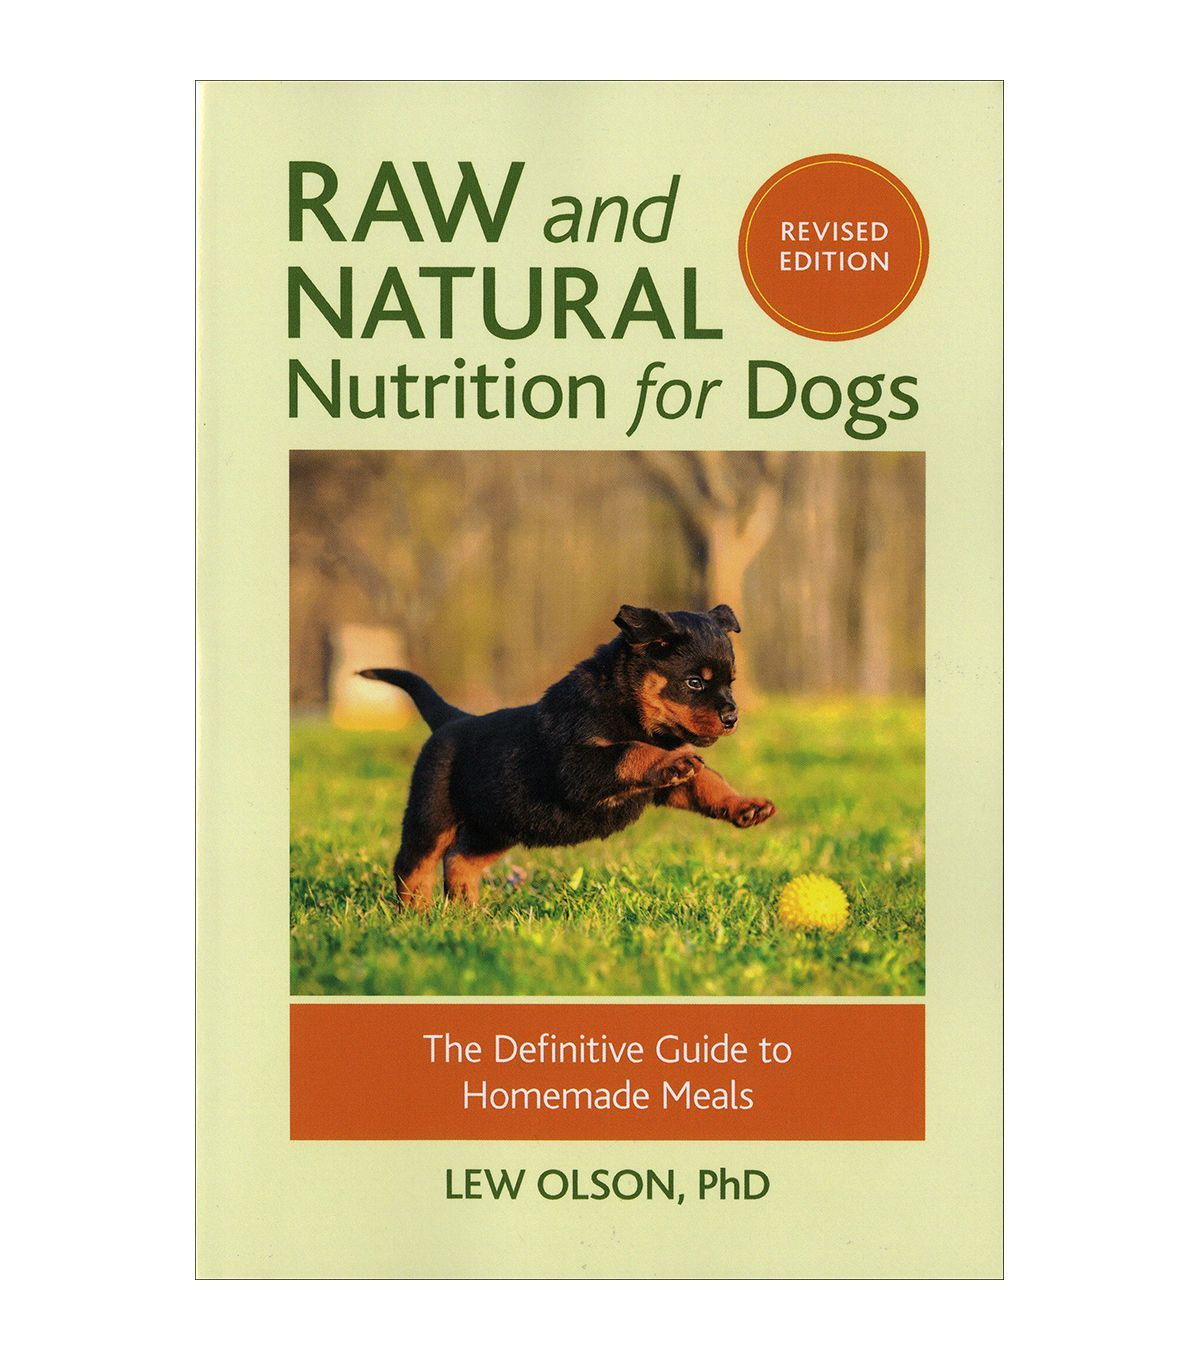 Lew olson raw natural nutrition for dogs book dog dog feeding lew olson raw natural nutrition for dogs book forumfinder Gallery